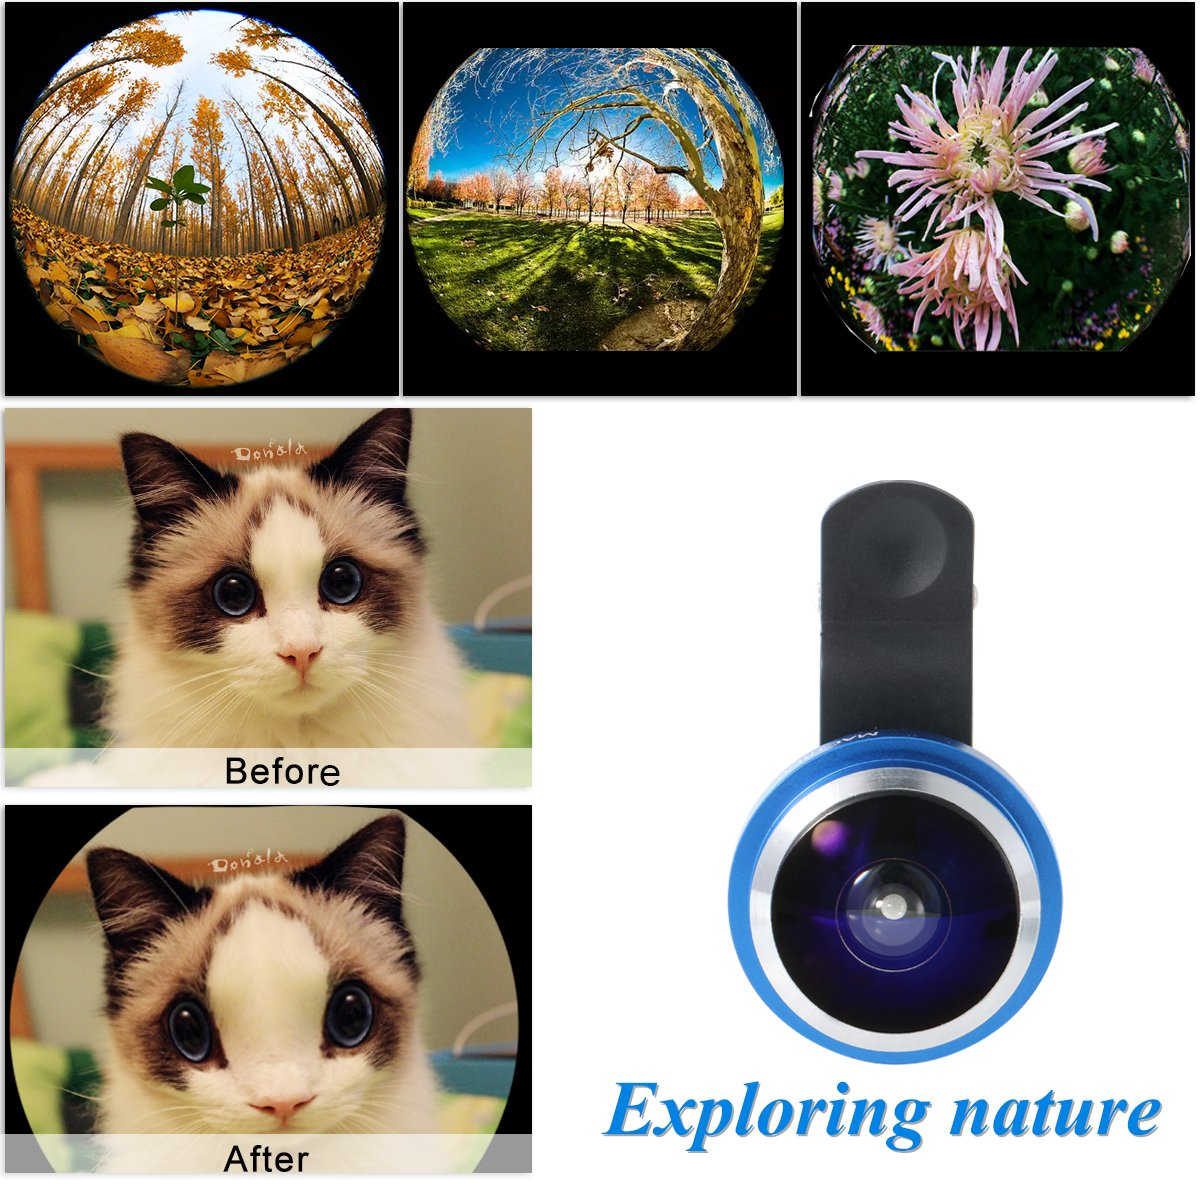 Mactrem 235° Fisheye Smartphone Lens, Works with Most Smartphones, for iPhone 7/7 Plus/6/6s/6s Plus/5/5s/4/SE/Samsung S7 S6 S5 HTC Huawei